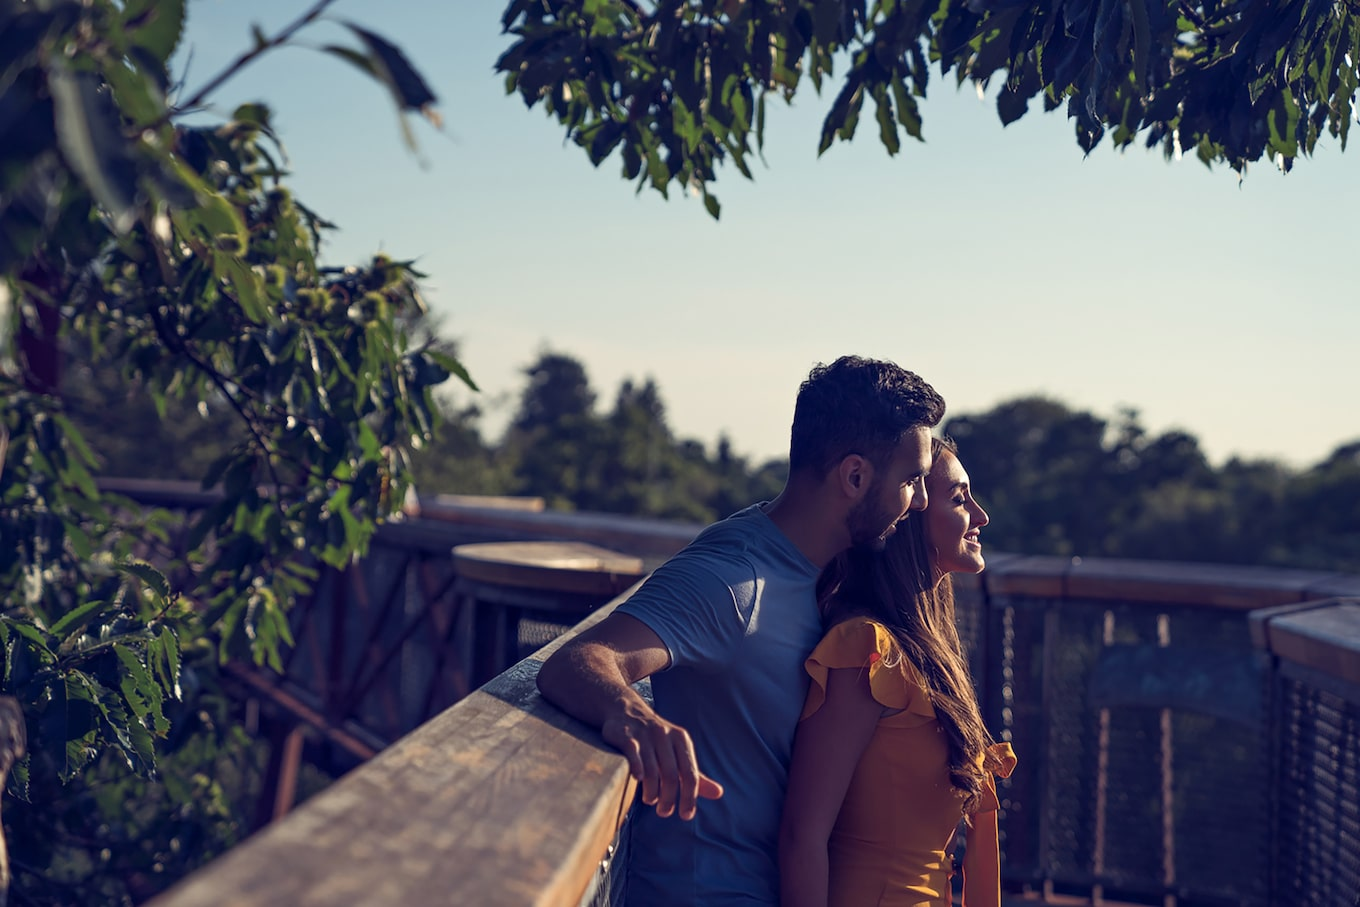 brent-kirkman-sony-alpha-9-couple-embracing-in-tropical-country